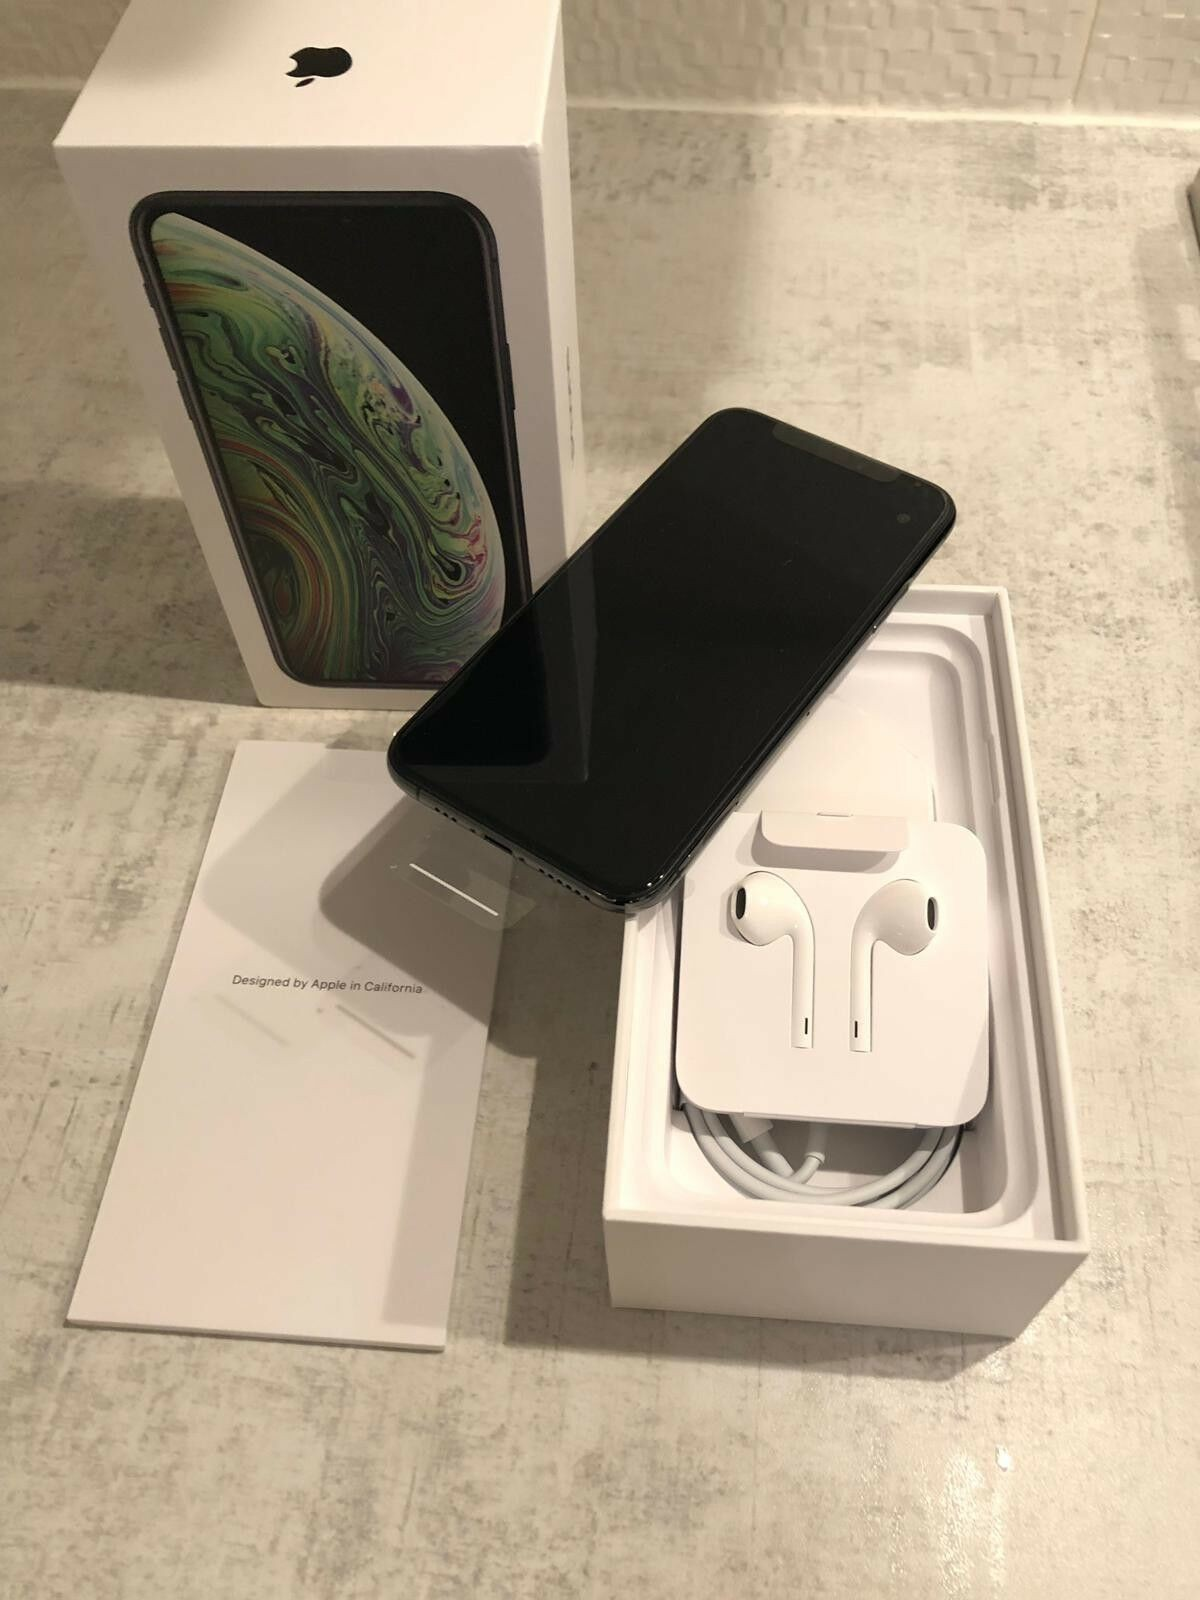 Apple iPhone Xs 64gb €400 iPhone Xs Max 64gb € - United Kingdom - sclsaleslimited@gmail.com